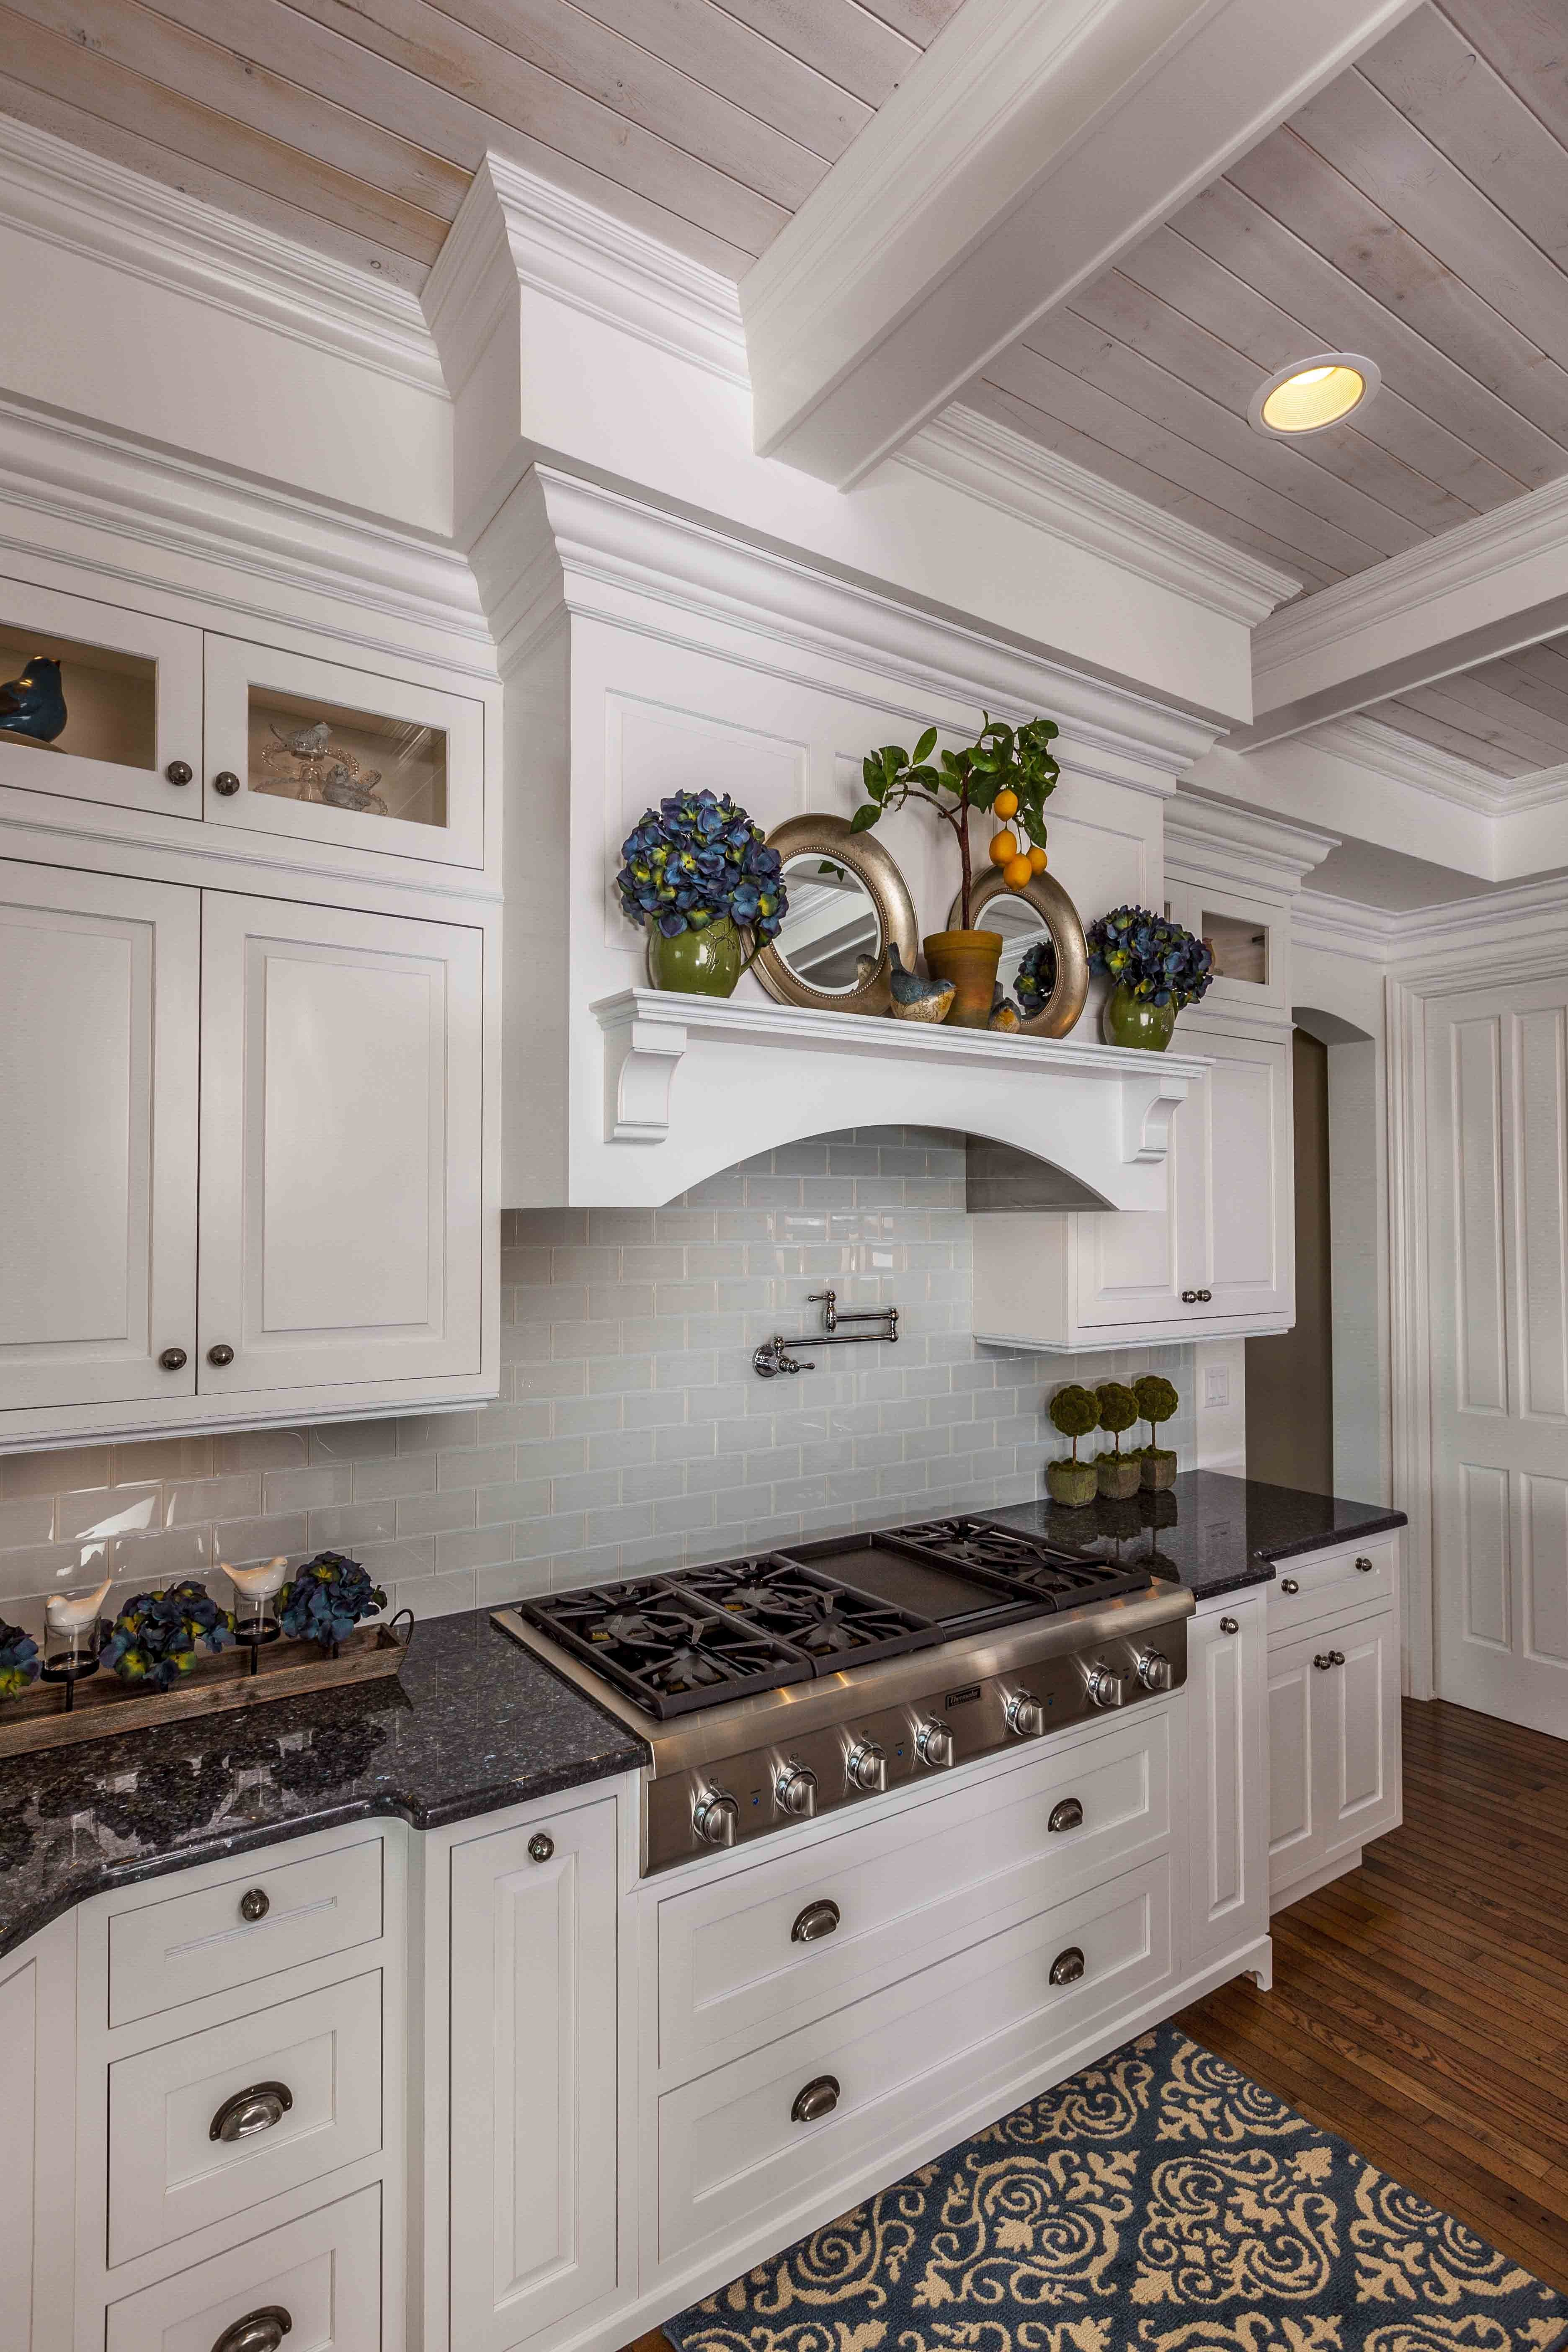 Desain Kitchen Set Klasik Terbaik Untuk Country Classic Door Style Finished In Designer White Paint Of Desain Kitchen Set Klasik Paling Indah Untuk Hotel In Liverpool Mercure Liverpool atlantic tower Hotel